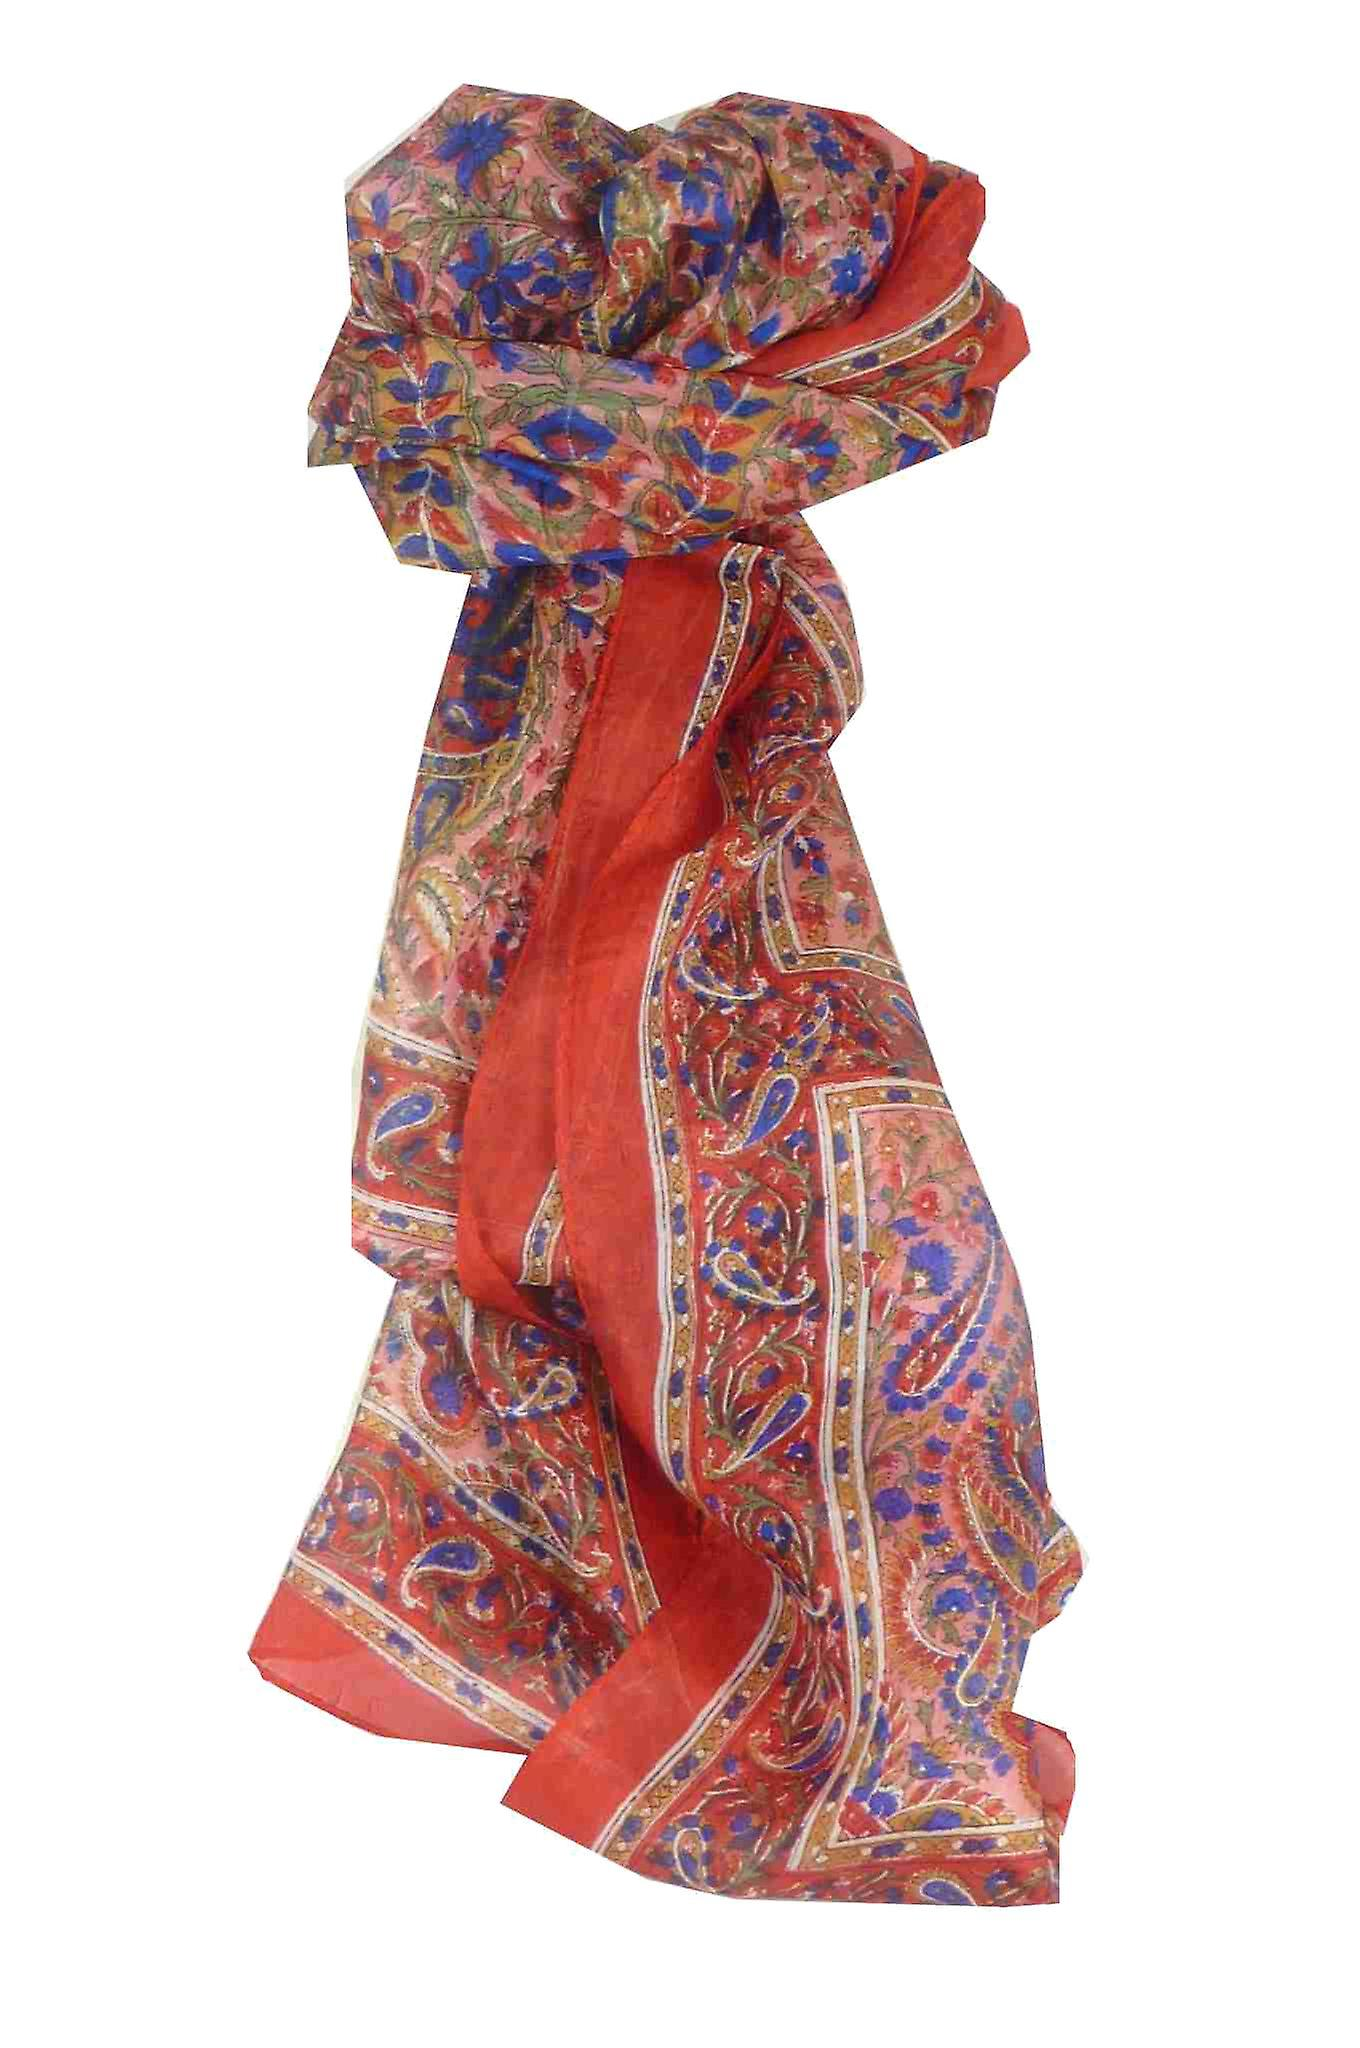 Mulberry Silk Traditional Long Scarf Purna Red by Pashmina & Silk